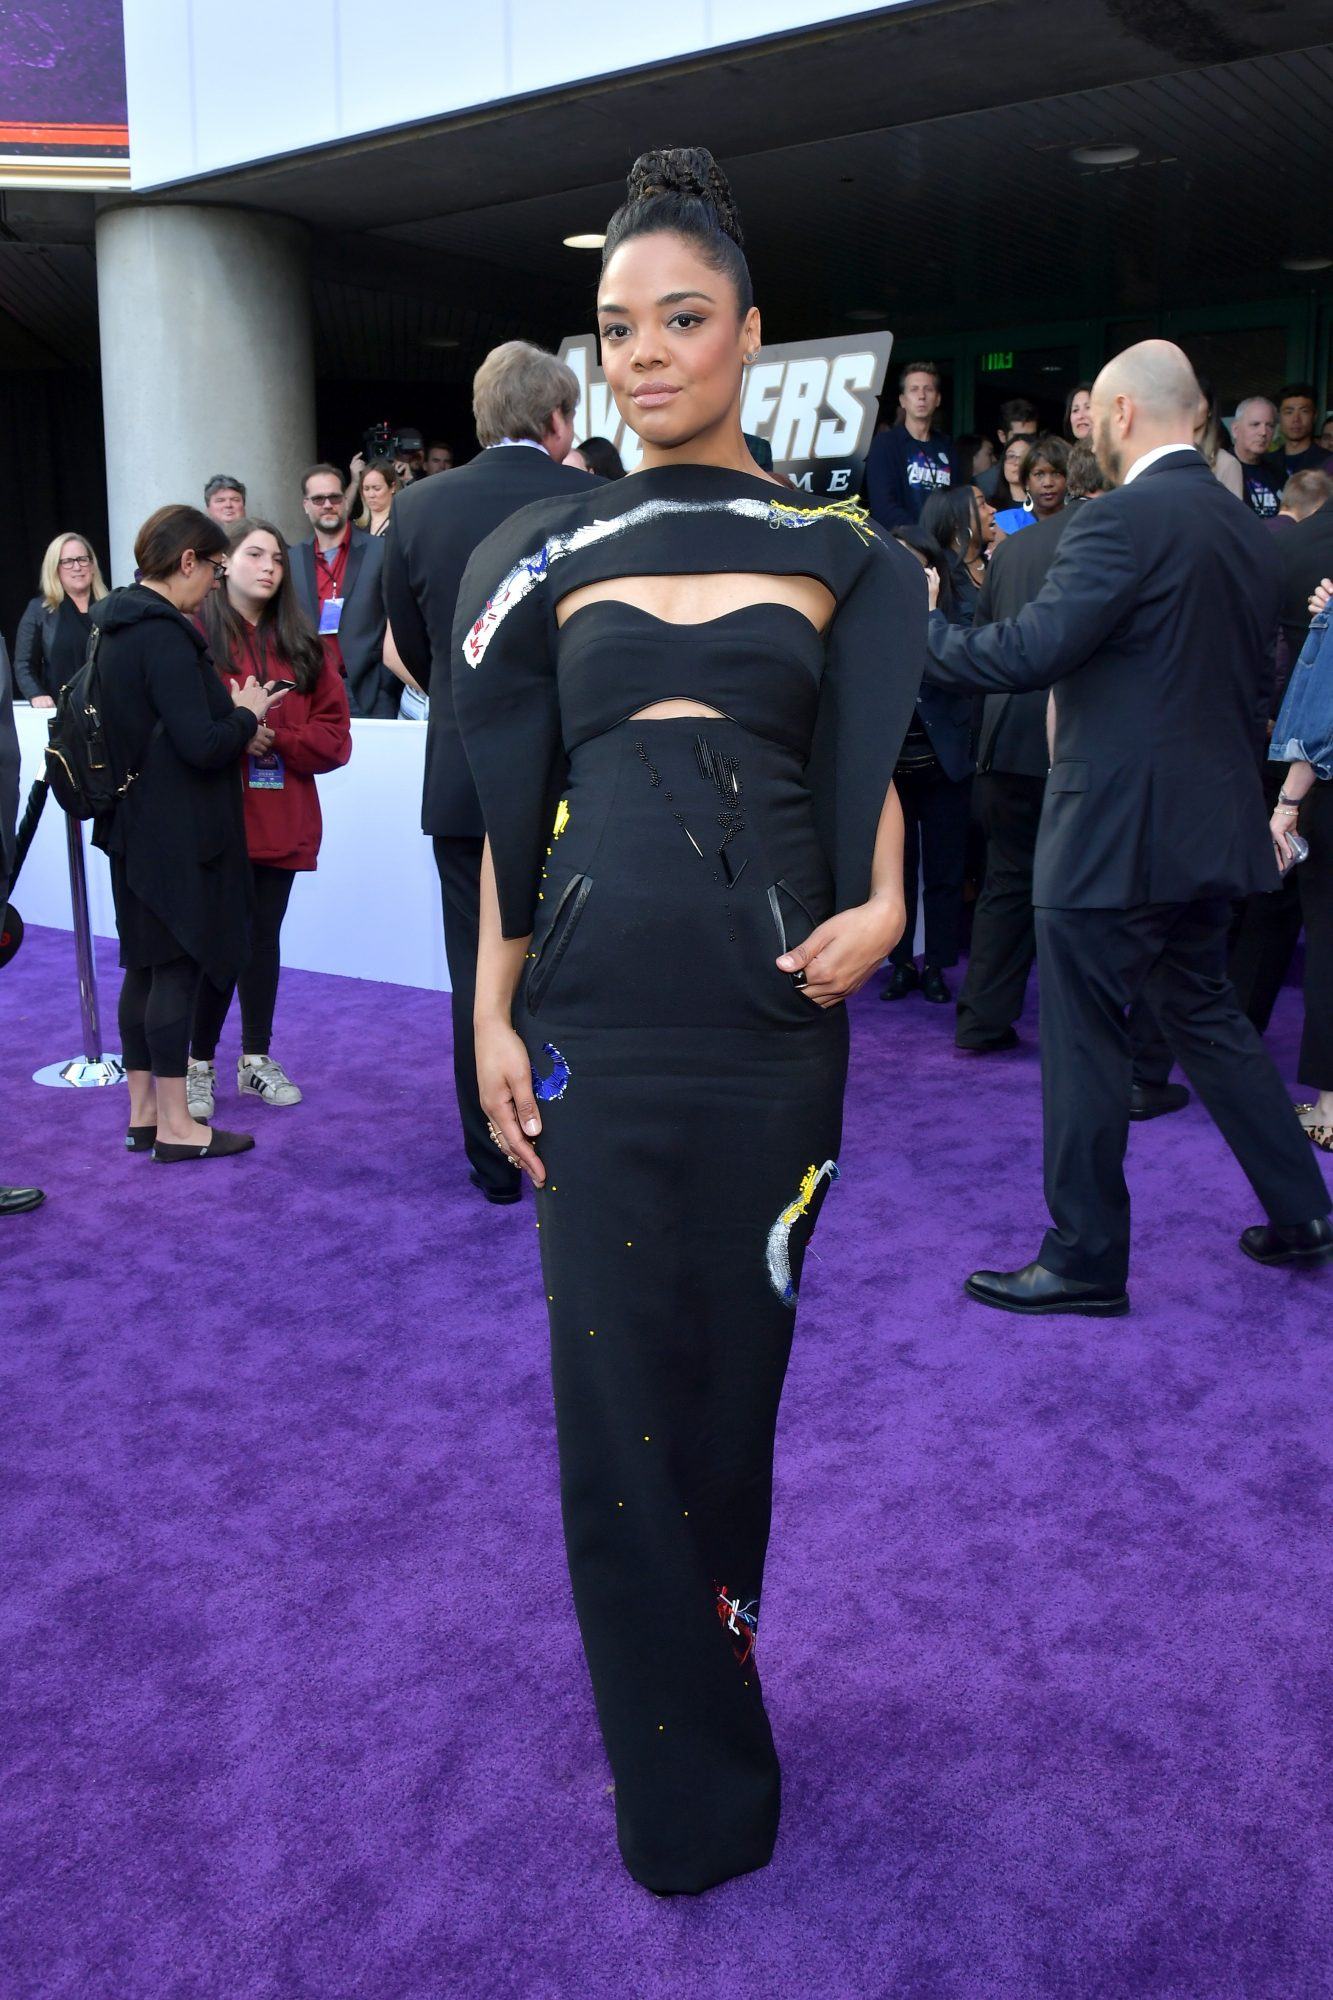 """Tessa Thompson attends the world premiere of Walt Disney Studios Motion Pictures """"Avengers: Endgame"""" at the Los Angeles Convention Center on April 22, 2019 in Los Angeles, California.  (Photo by Amy Sussman/Getty Images)"""